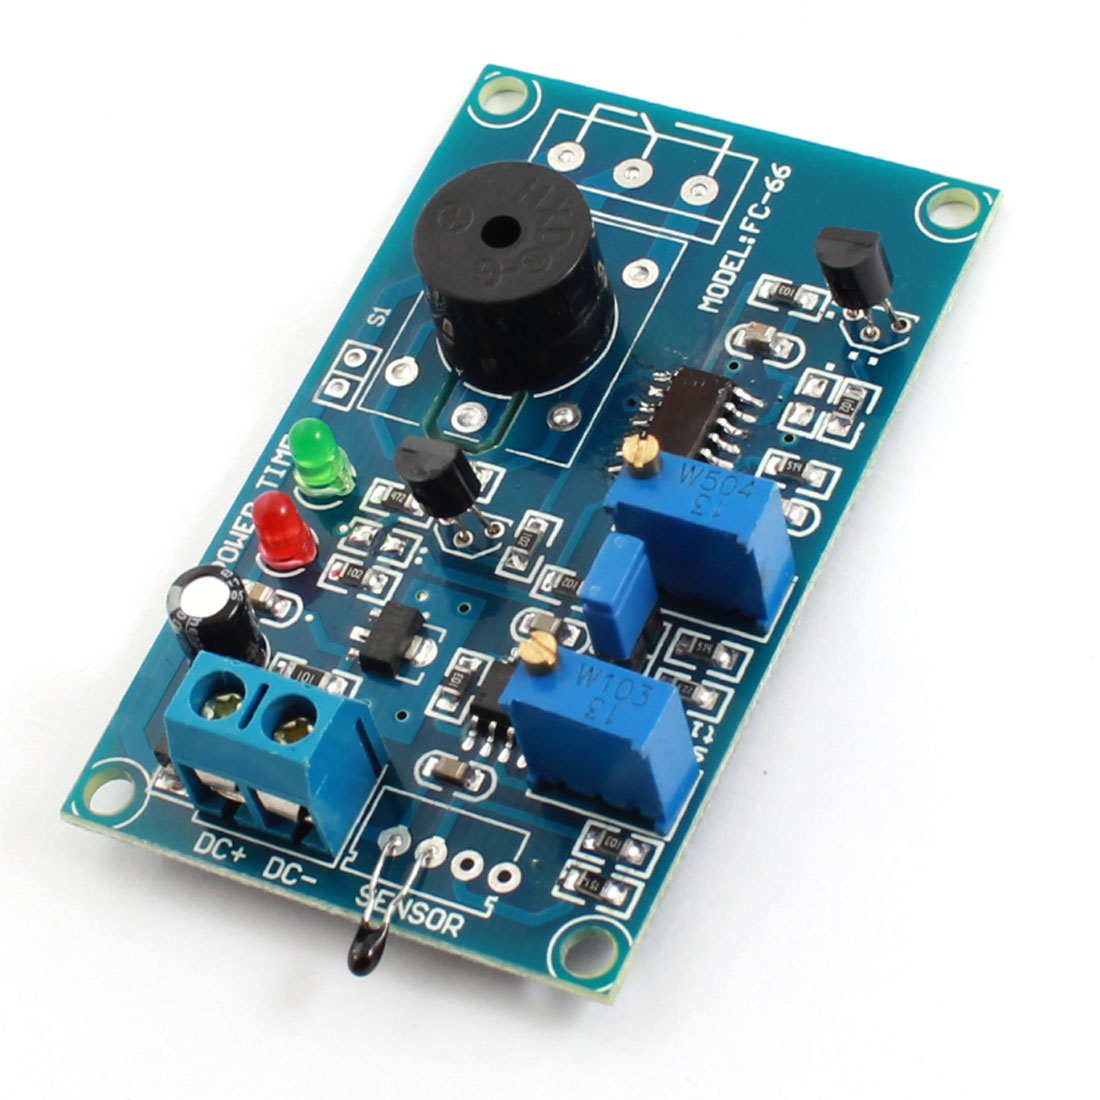 DC 12V 0-20S Low Temperature Trigger Pyroelectricity Alarm Buzzer Time Delay PCB Circuit Module Green